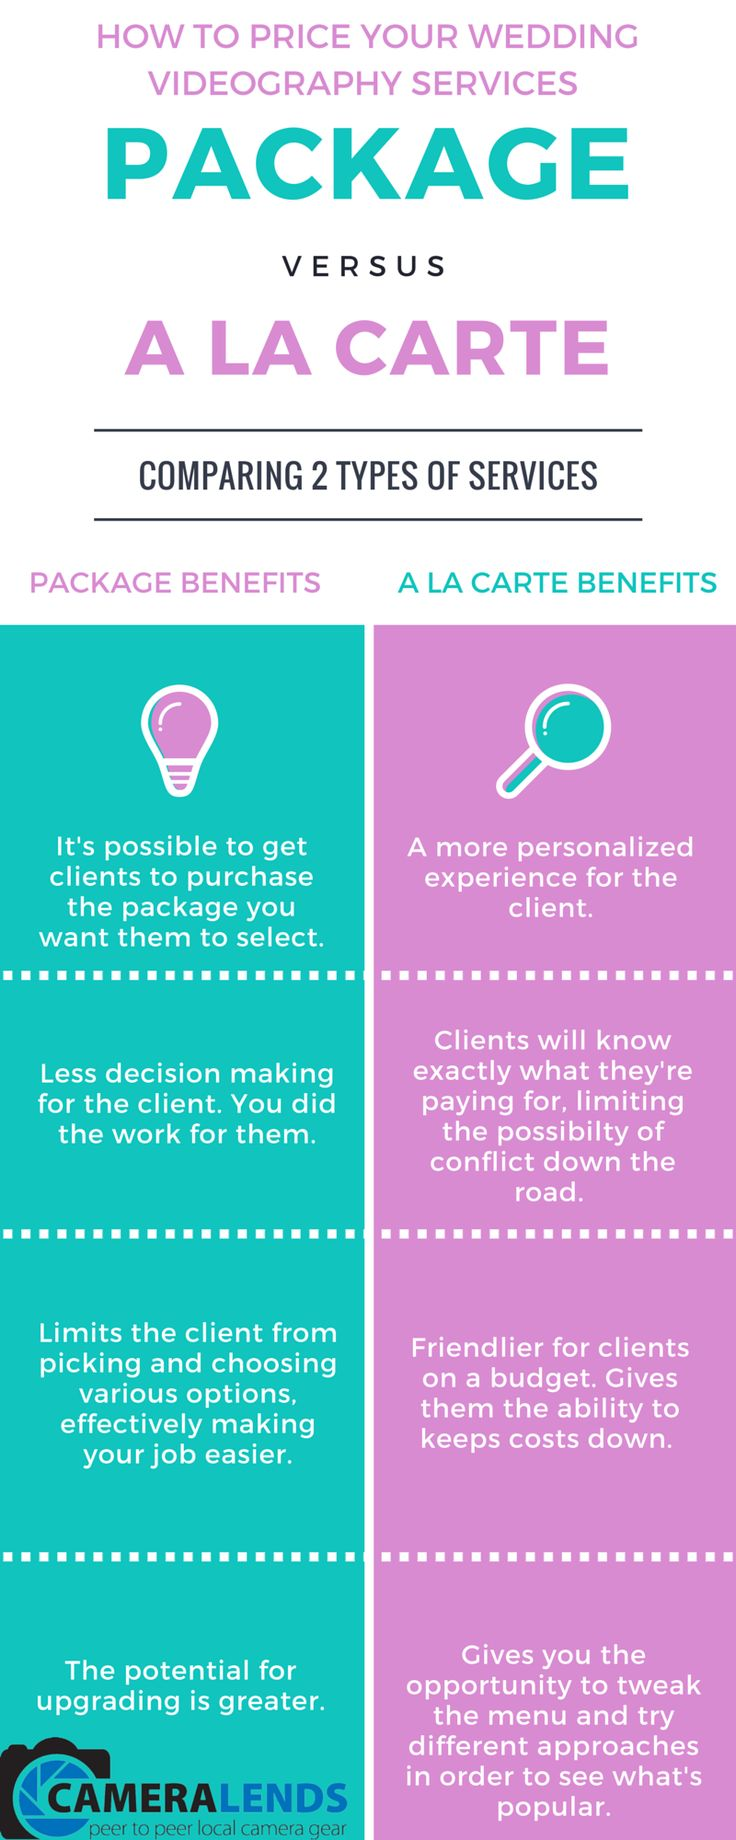 Wedding Videography Prices Packages vs A la Carte